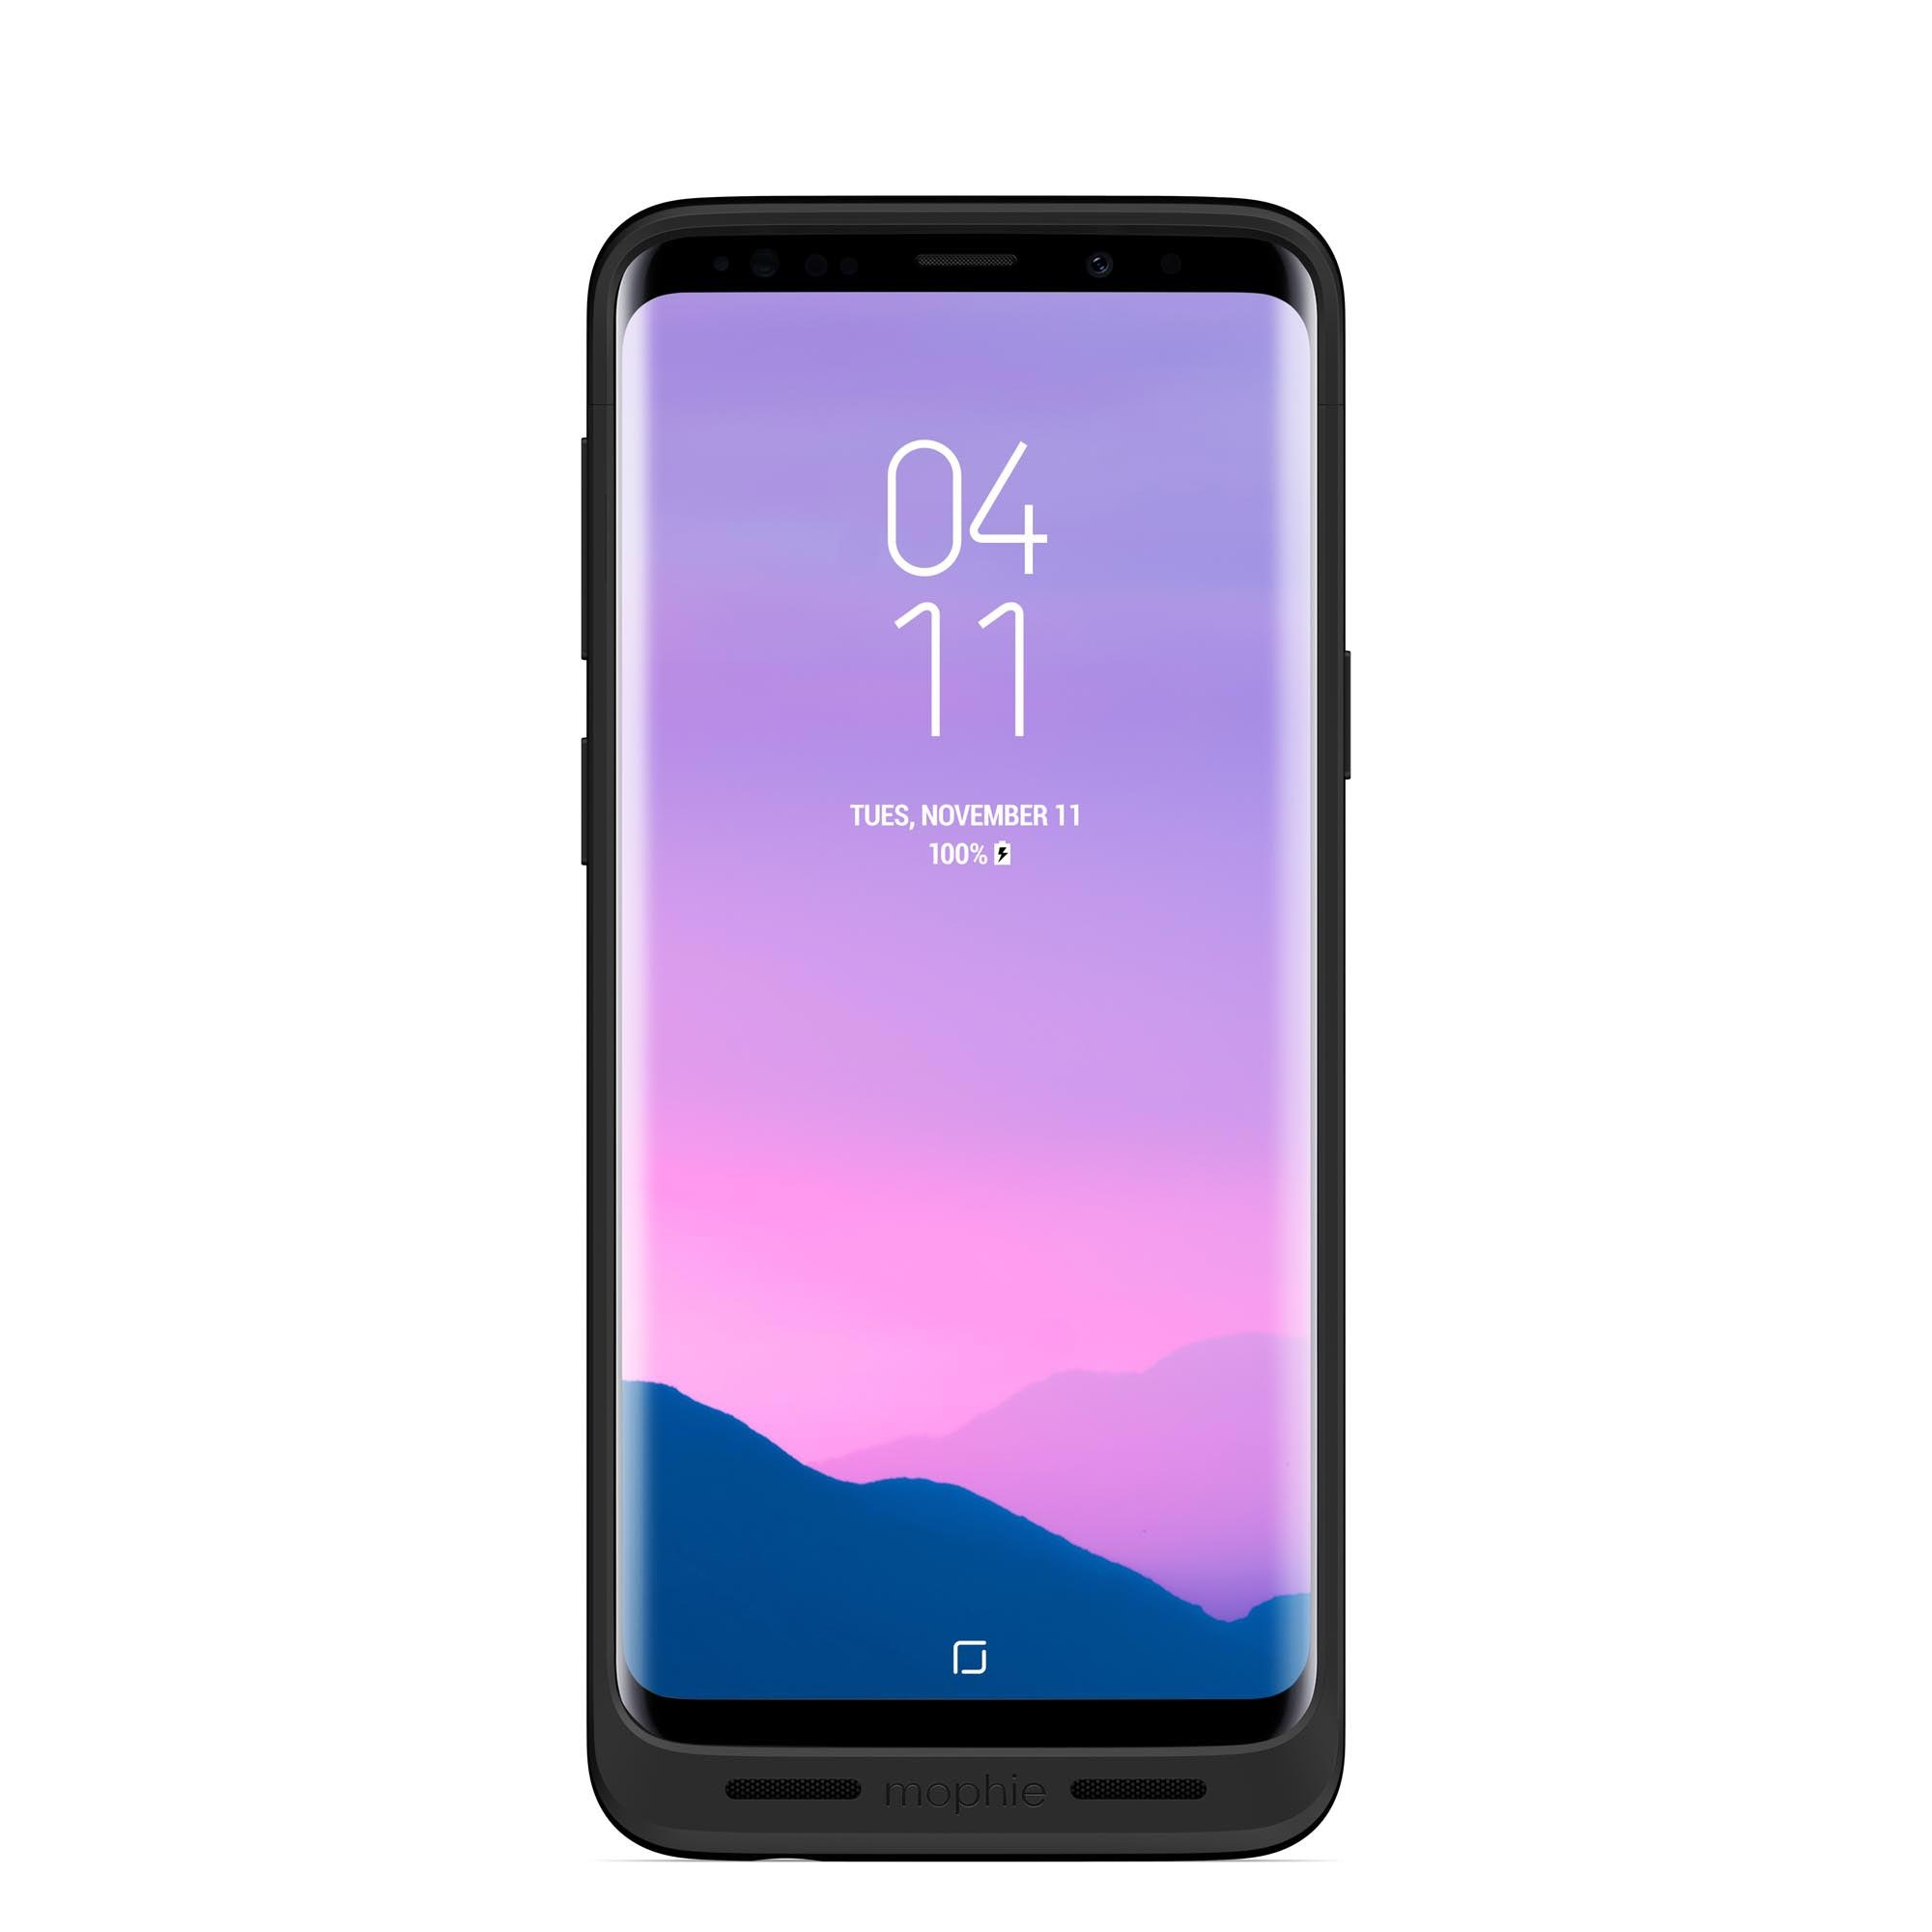 Juice Pack Made for Samsung Galaxy S9 - Wireless Charging Battery Case - Black by mophie (Image #3)